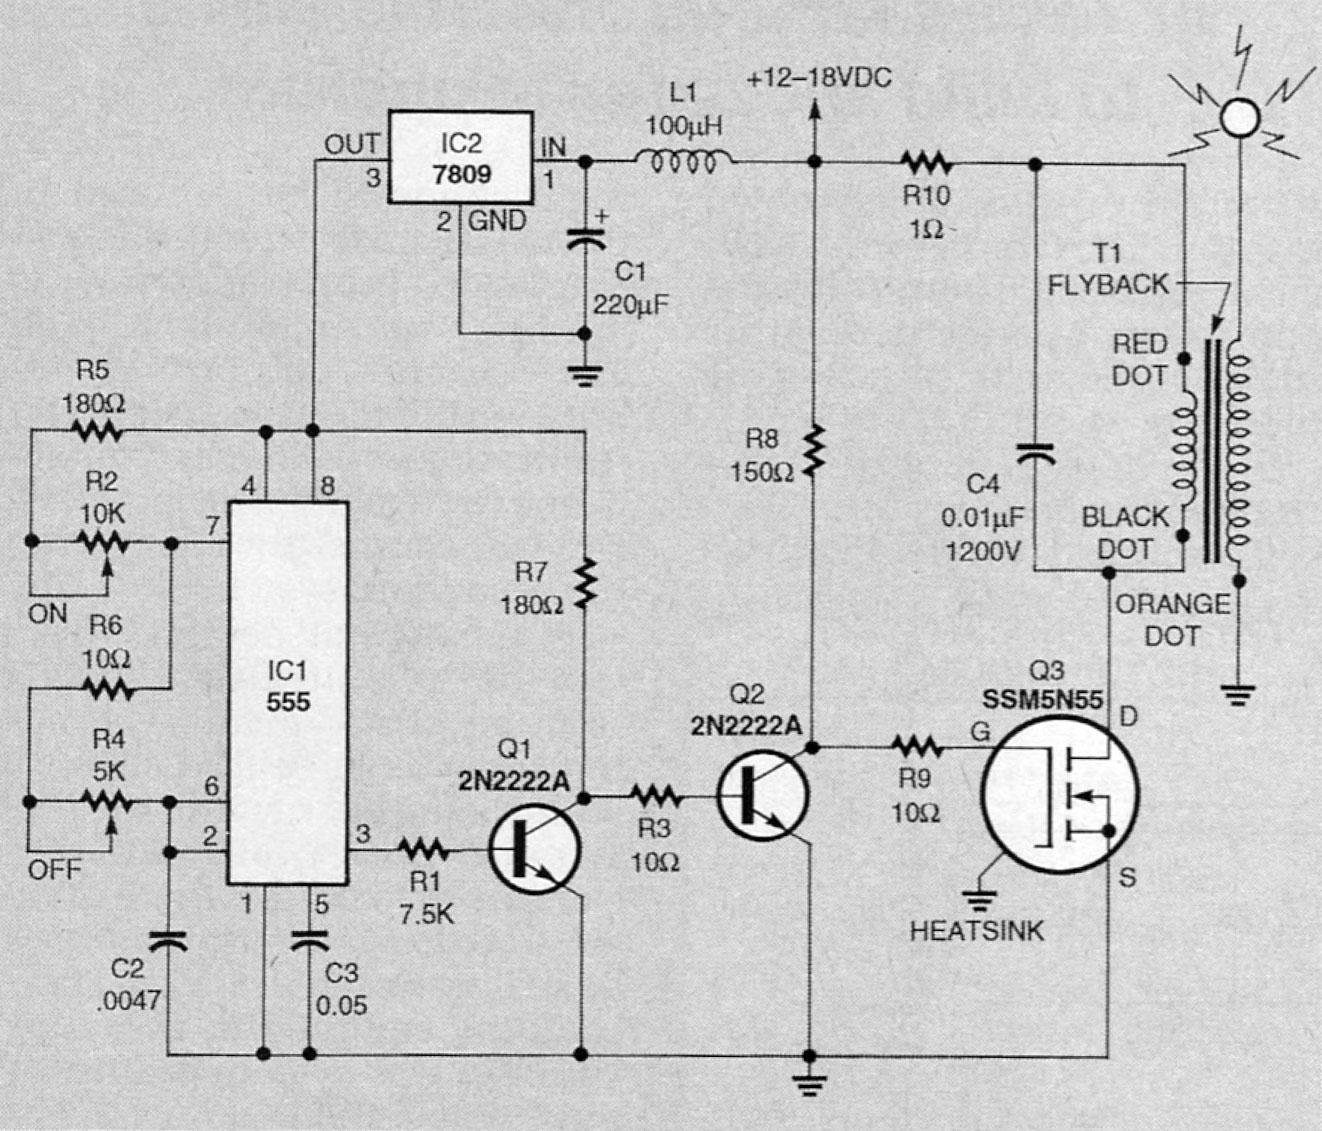 Related Circuits Narrow Pulse Generator Circuit Using 555 555 Waveform